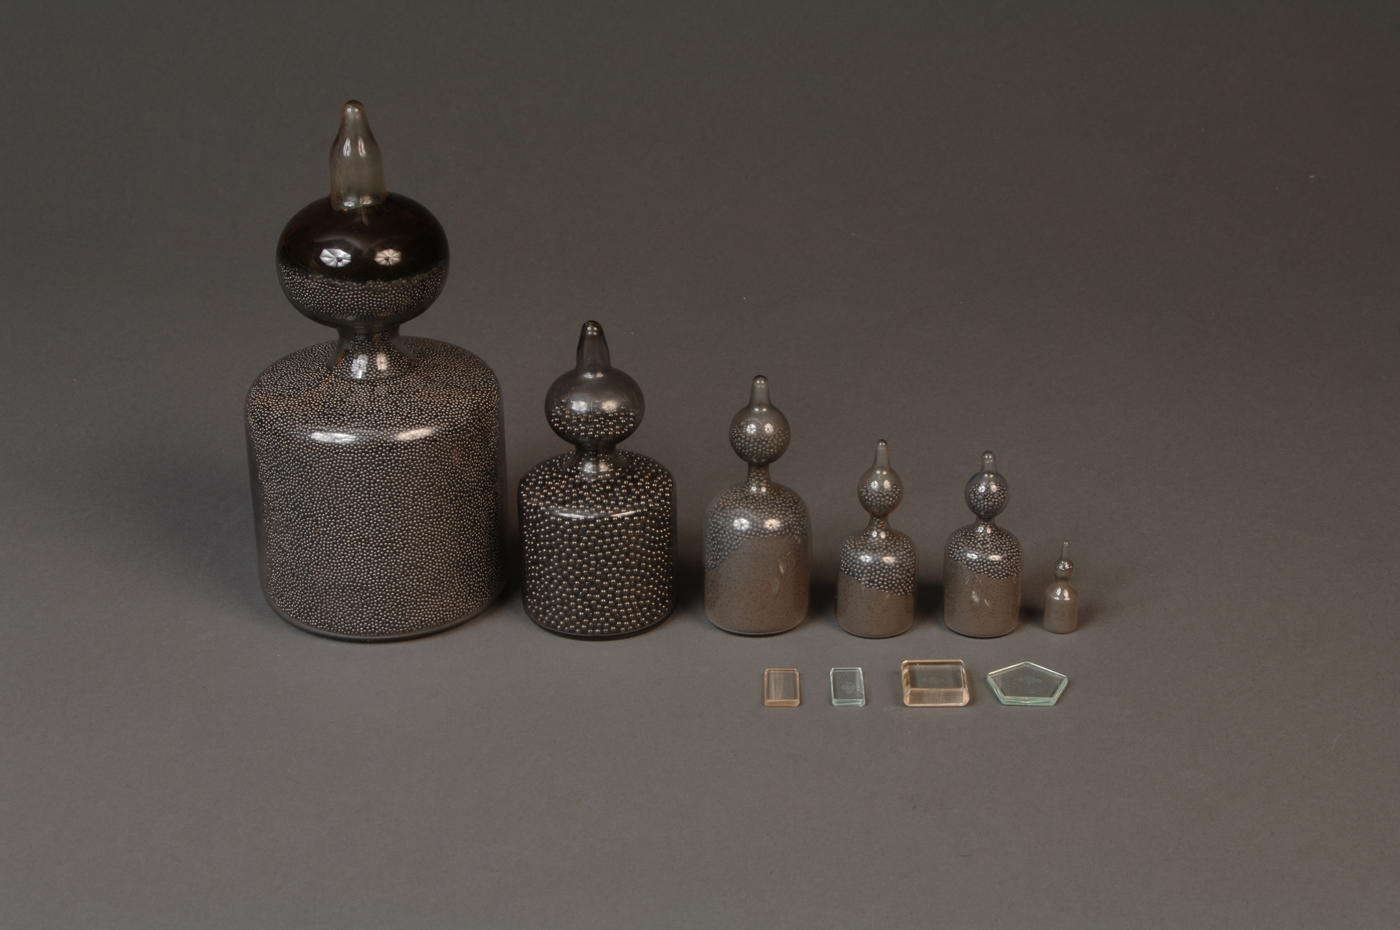 Set of 6 large weights filled with lead shot and 4 small weights made of glass